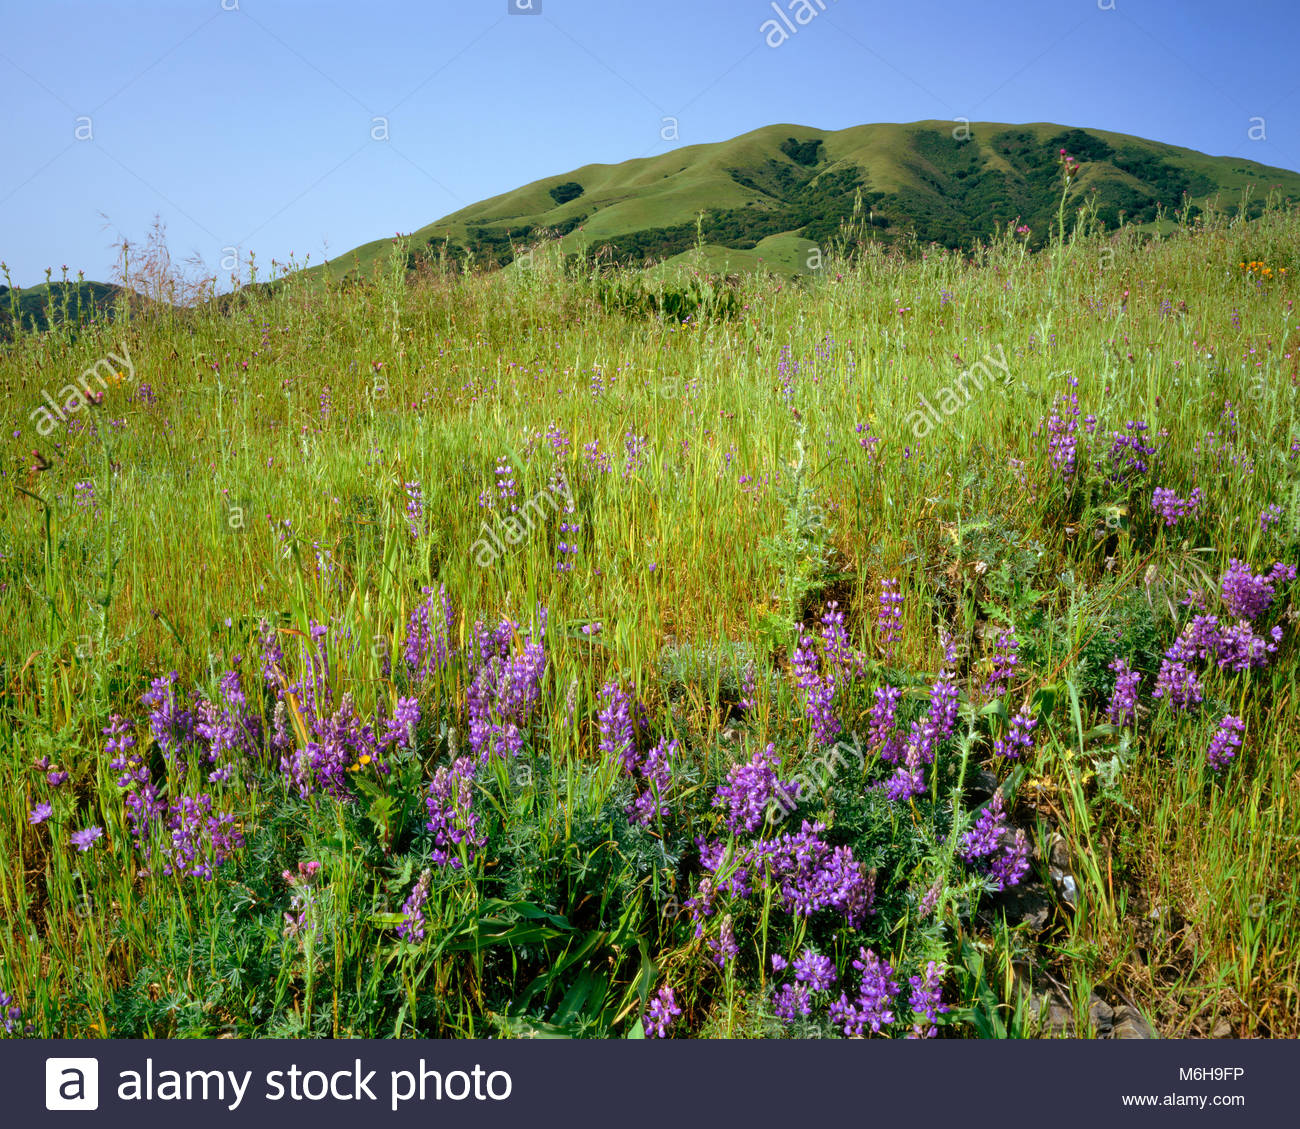 Lupine and Black Mountain, Nicacio, Marin County, California - Stock Image